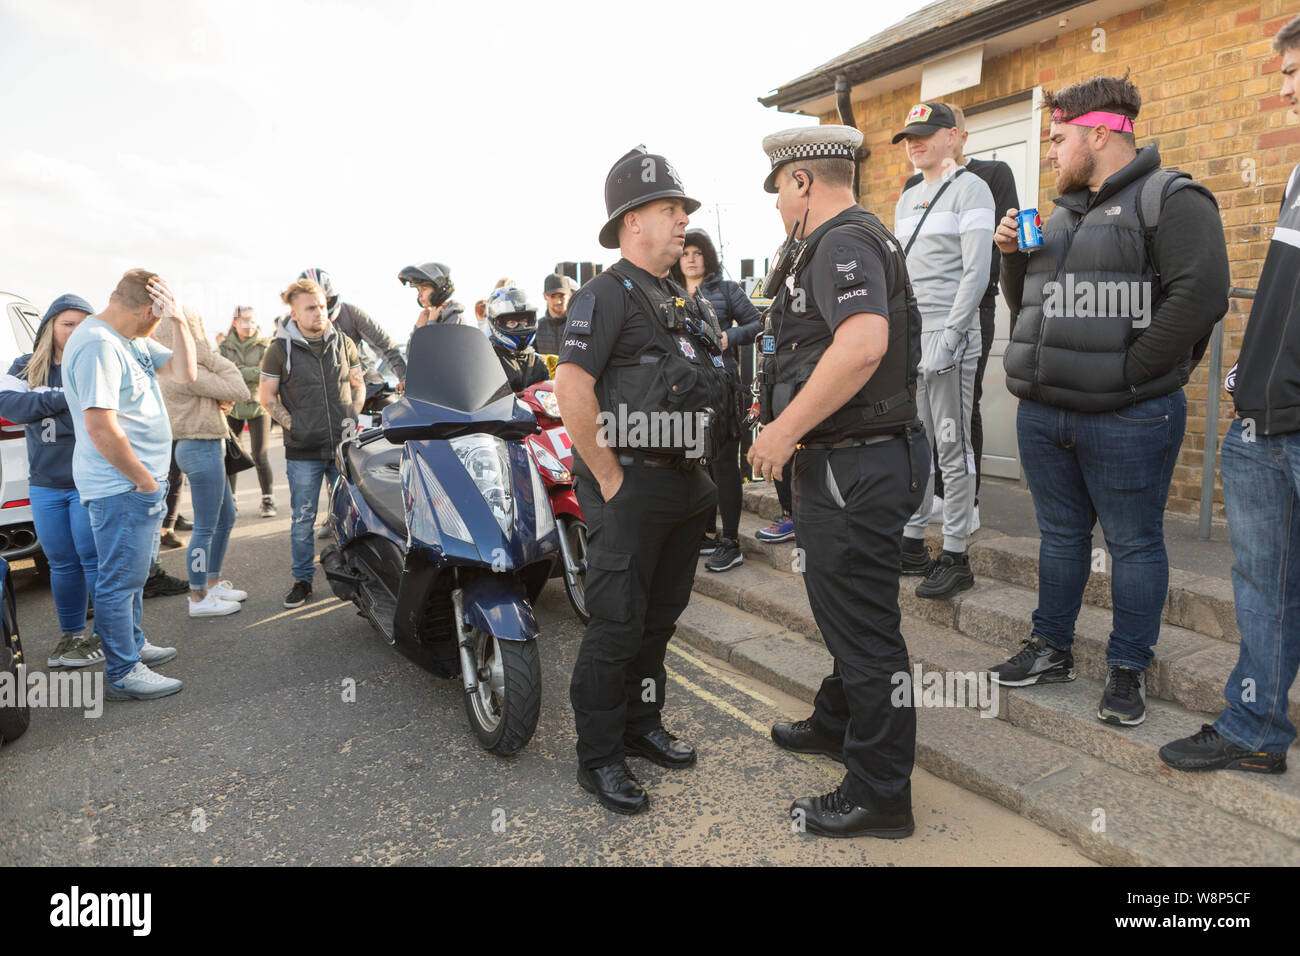 Southend on Sea, UK. 10th Aug, 2019. Police seize a motorcycle for illegal number plate. Friends and family of Cian Daly, one of five people who passed away at the end of July in suspected drugs-related deaths in South Essex, meet for a memorial ride on Southend seafront before heading to Leigh on Sea for a balloon release. Penelope Barritt/Alamy Live News Stock Photo